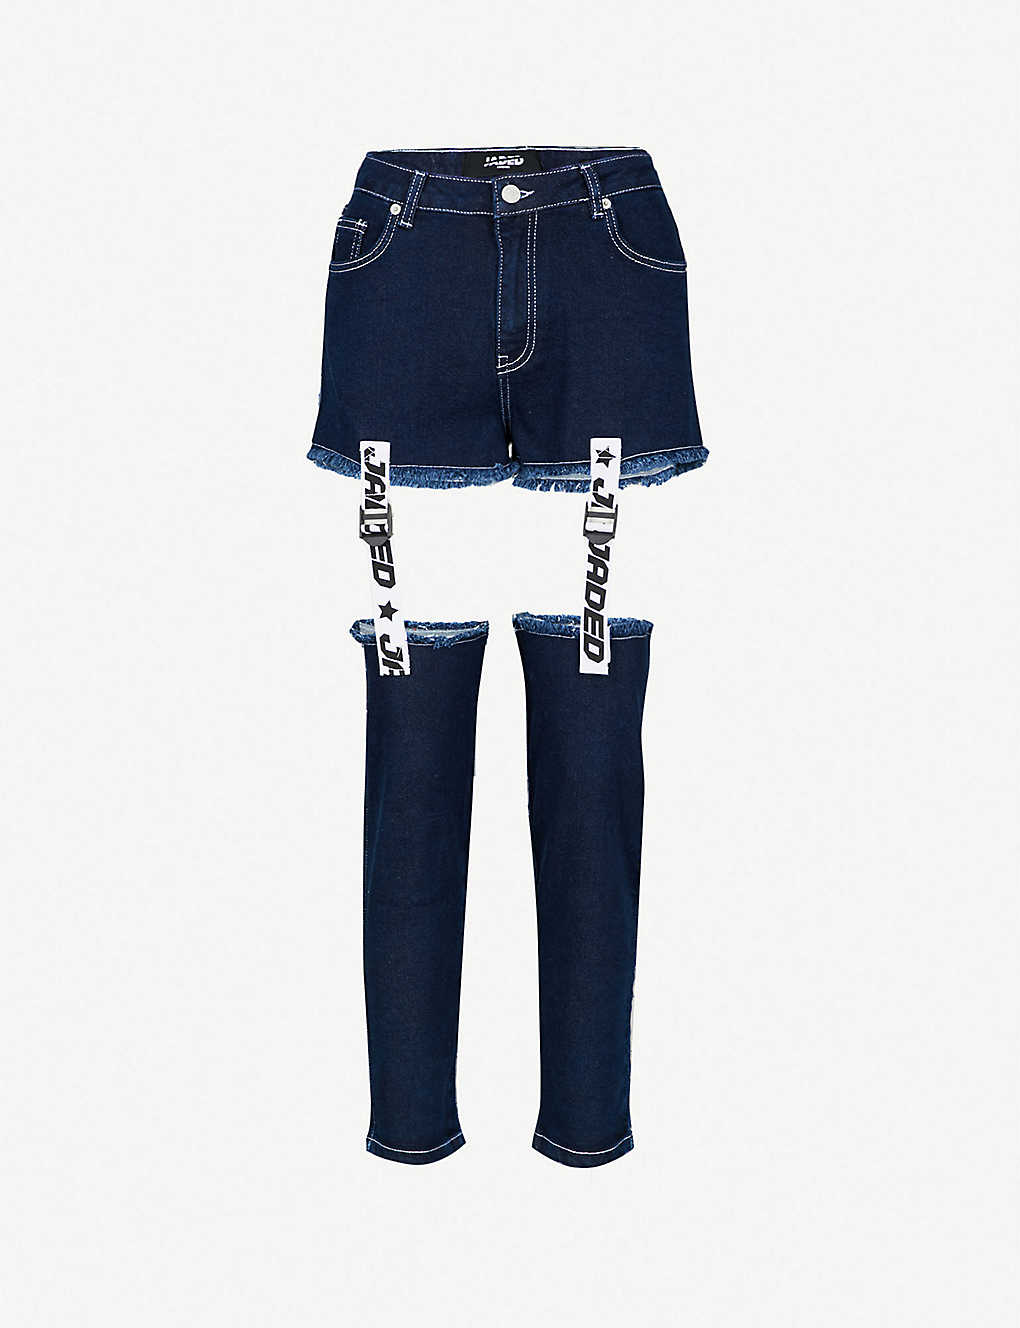 388139491bcc68 JADED LONDON - Tape   Buckle straight high-rise jeans